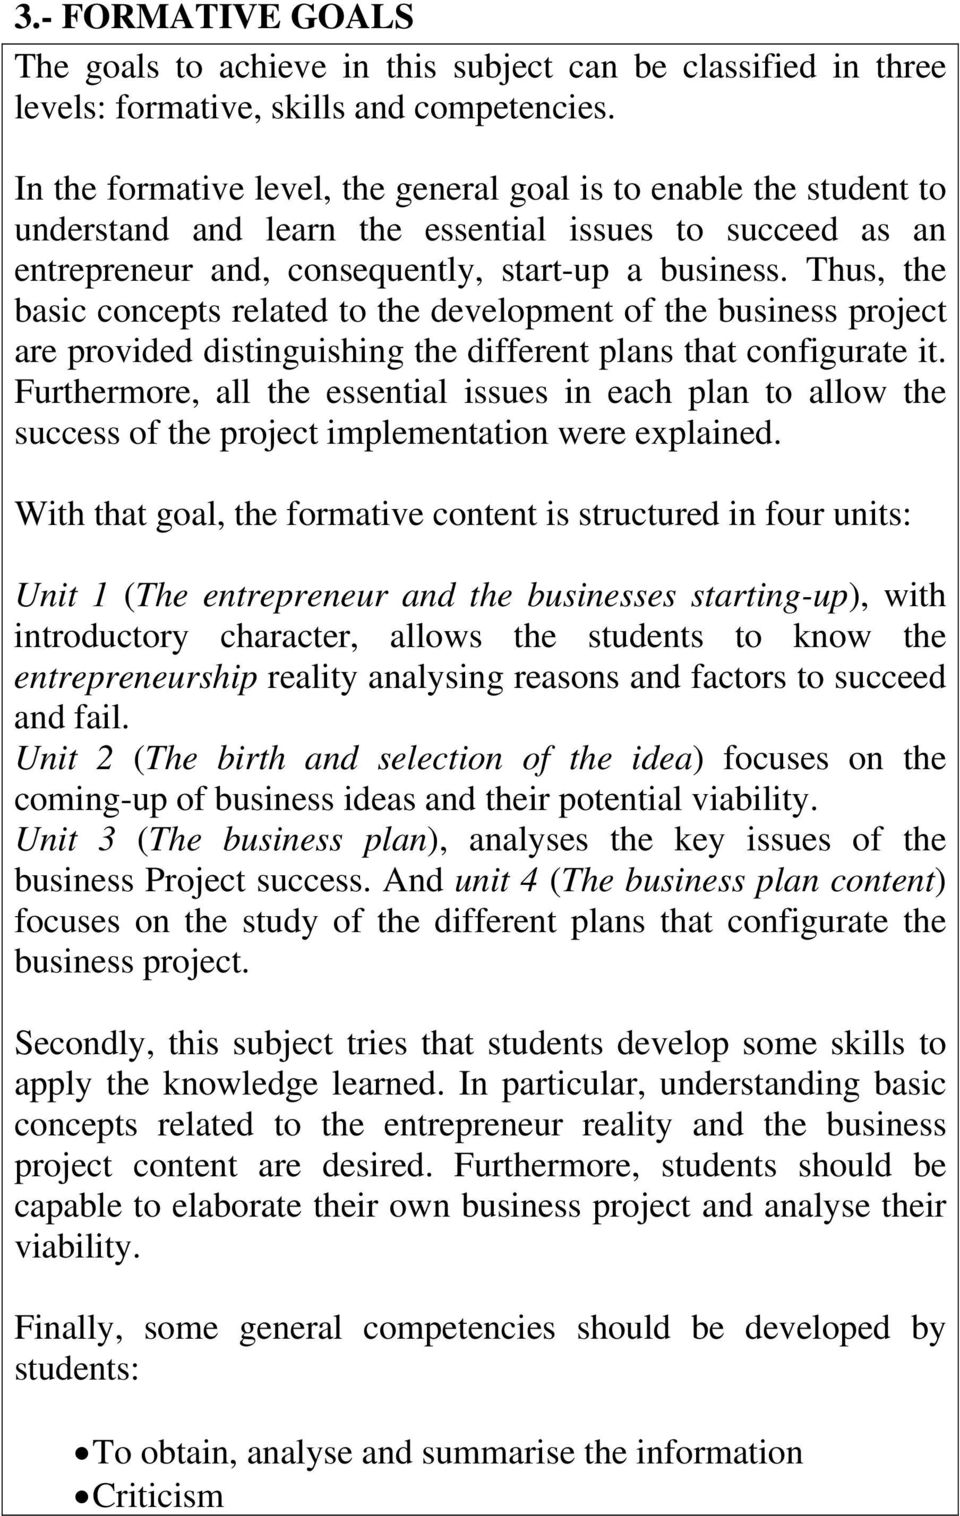 Thus, the basic concepts related to the development of the business project are provided distinguishing the different plans that configurate it.